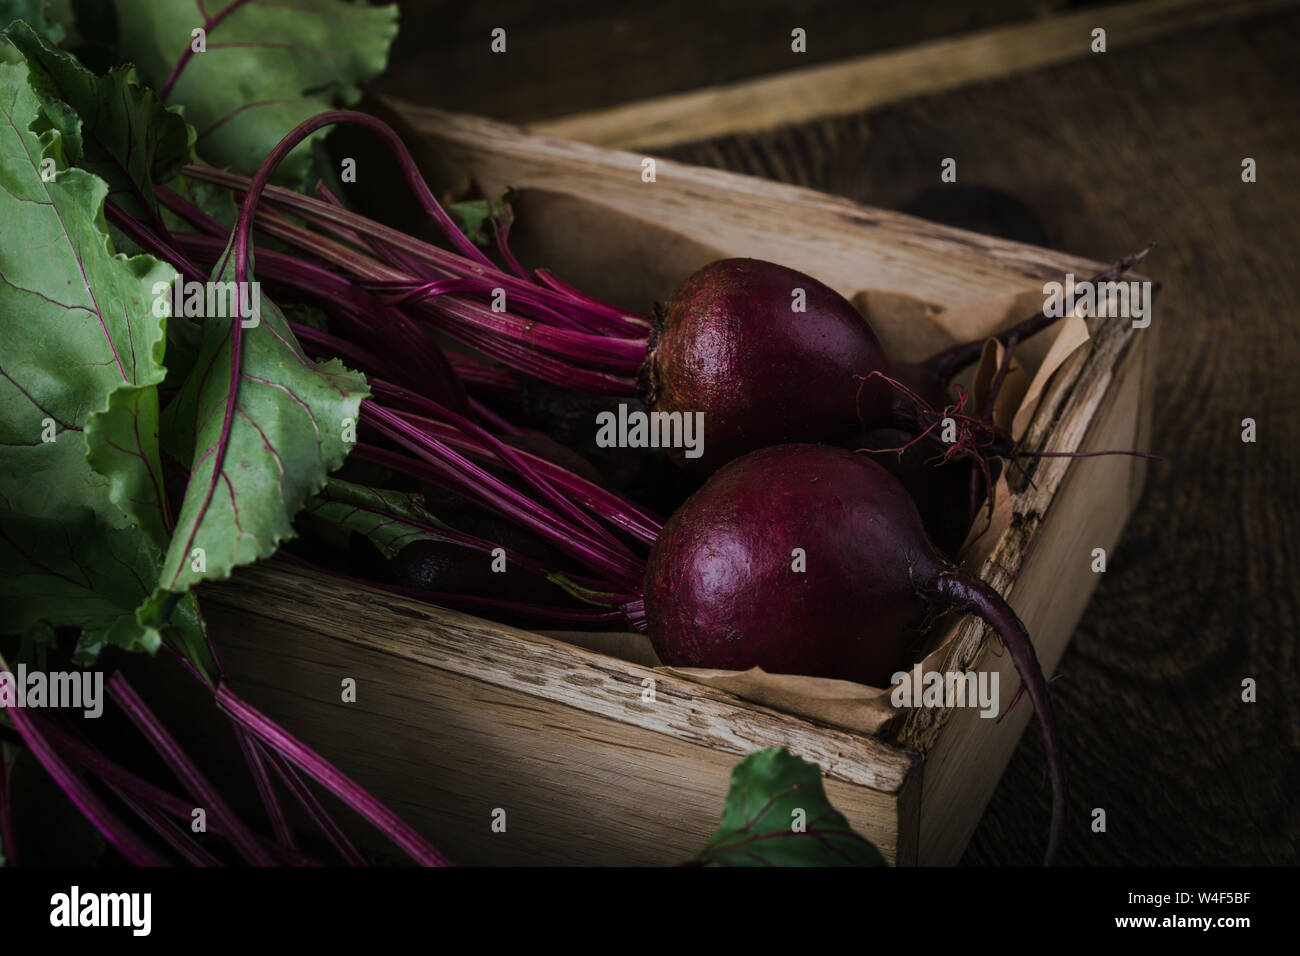 Fresh homegrown beetroots on wooden rustic table,  plant based food, local produce, close up Stock Photo